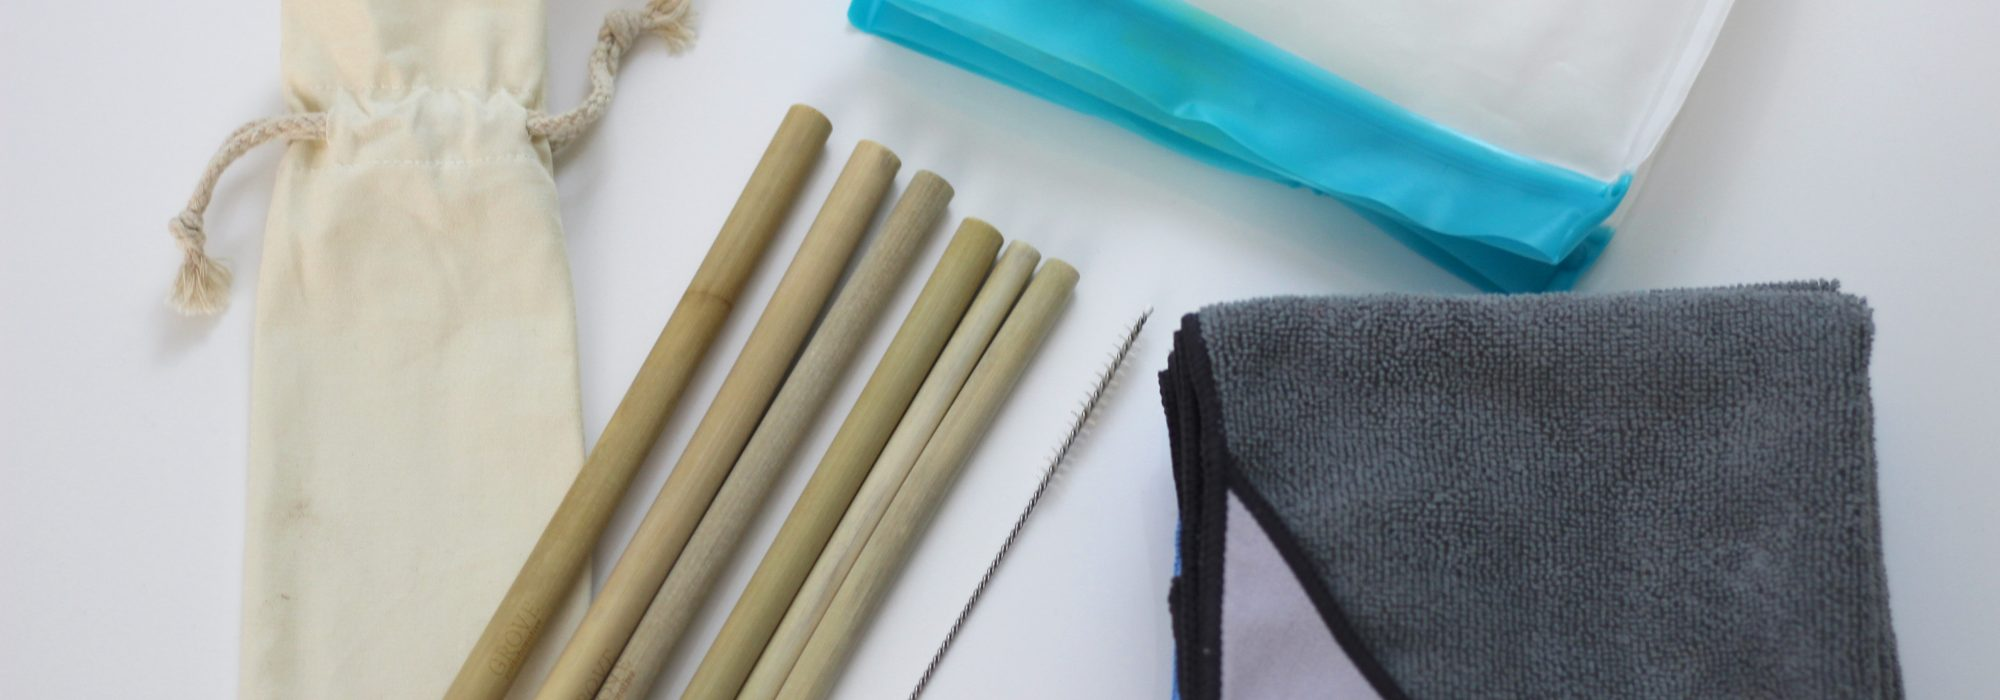 Zero Waste Products – Products to Swap Out